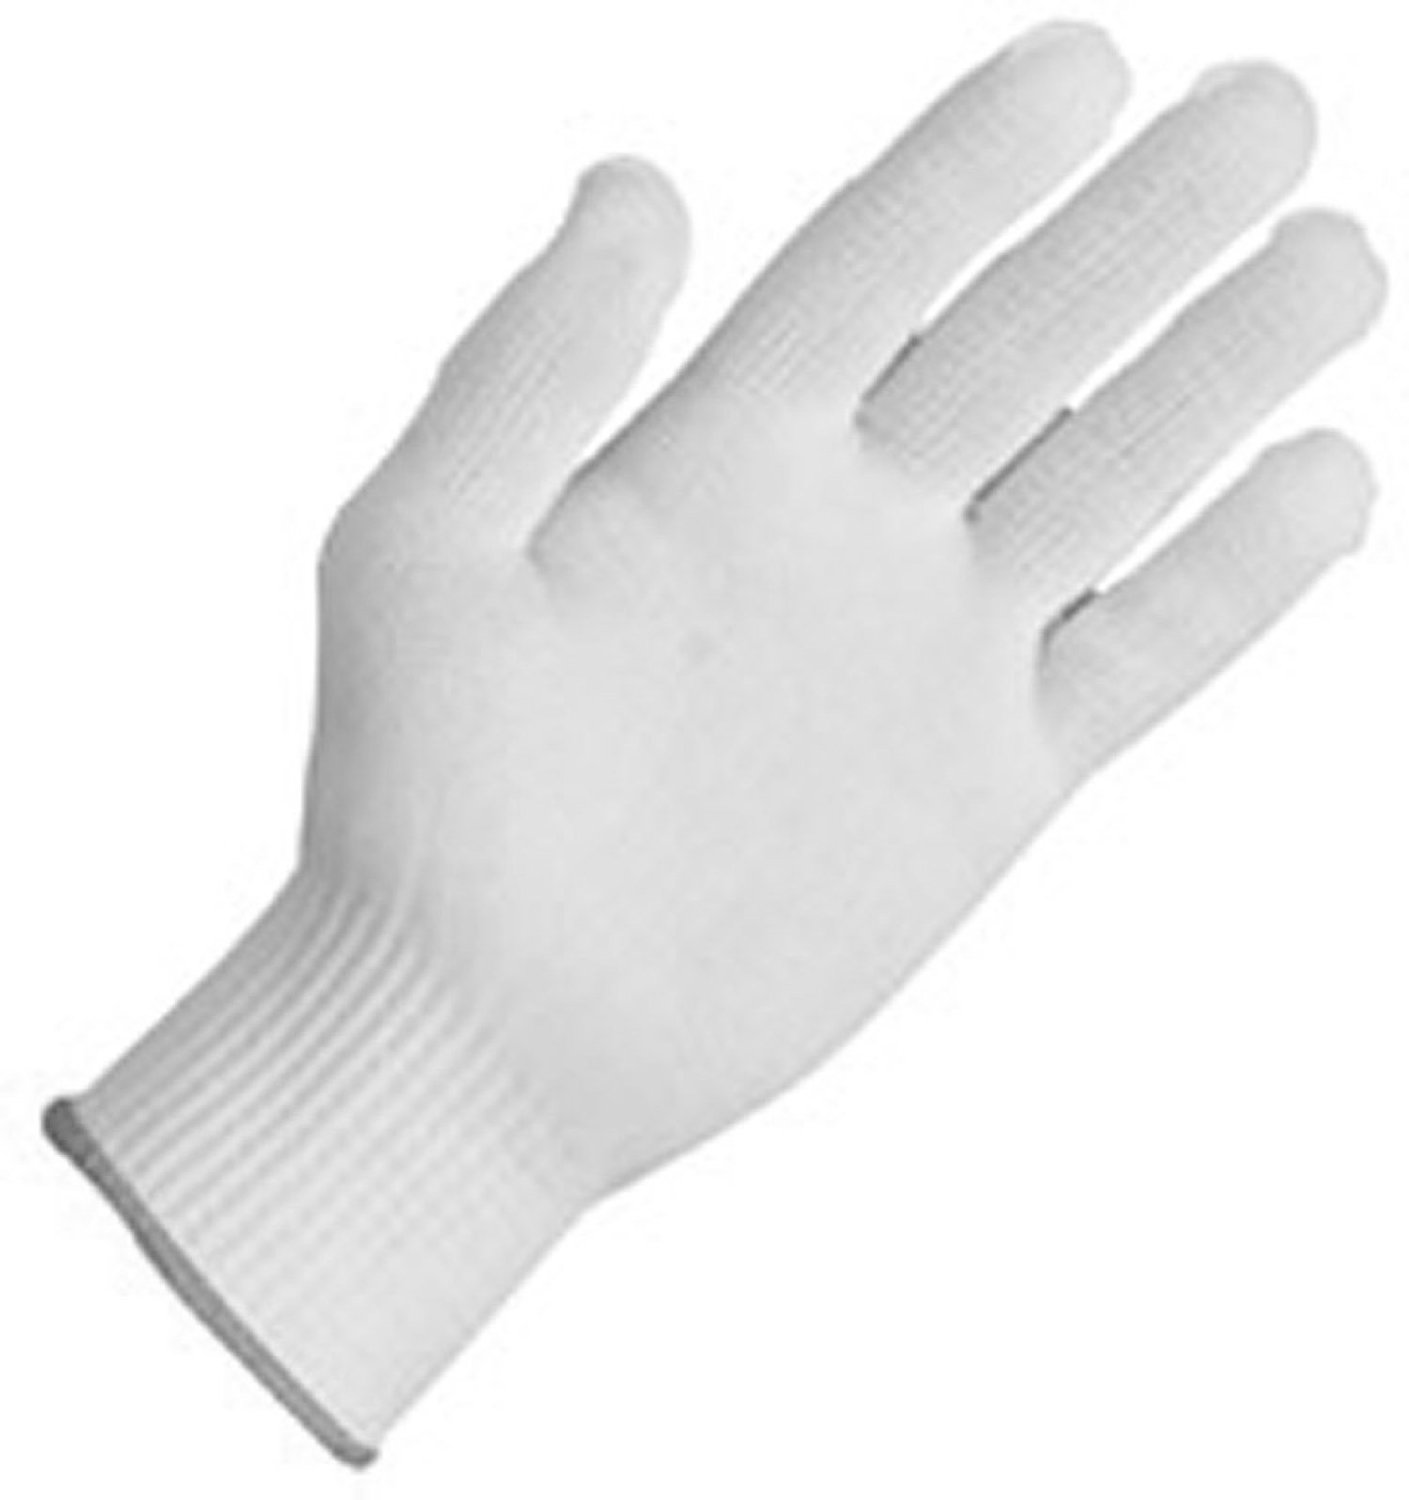 Gloves GN026 12 Pair Full Finger Gloves, Glove Liner, 10 Gram Tetoron Polyester Fiber Construction